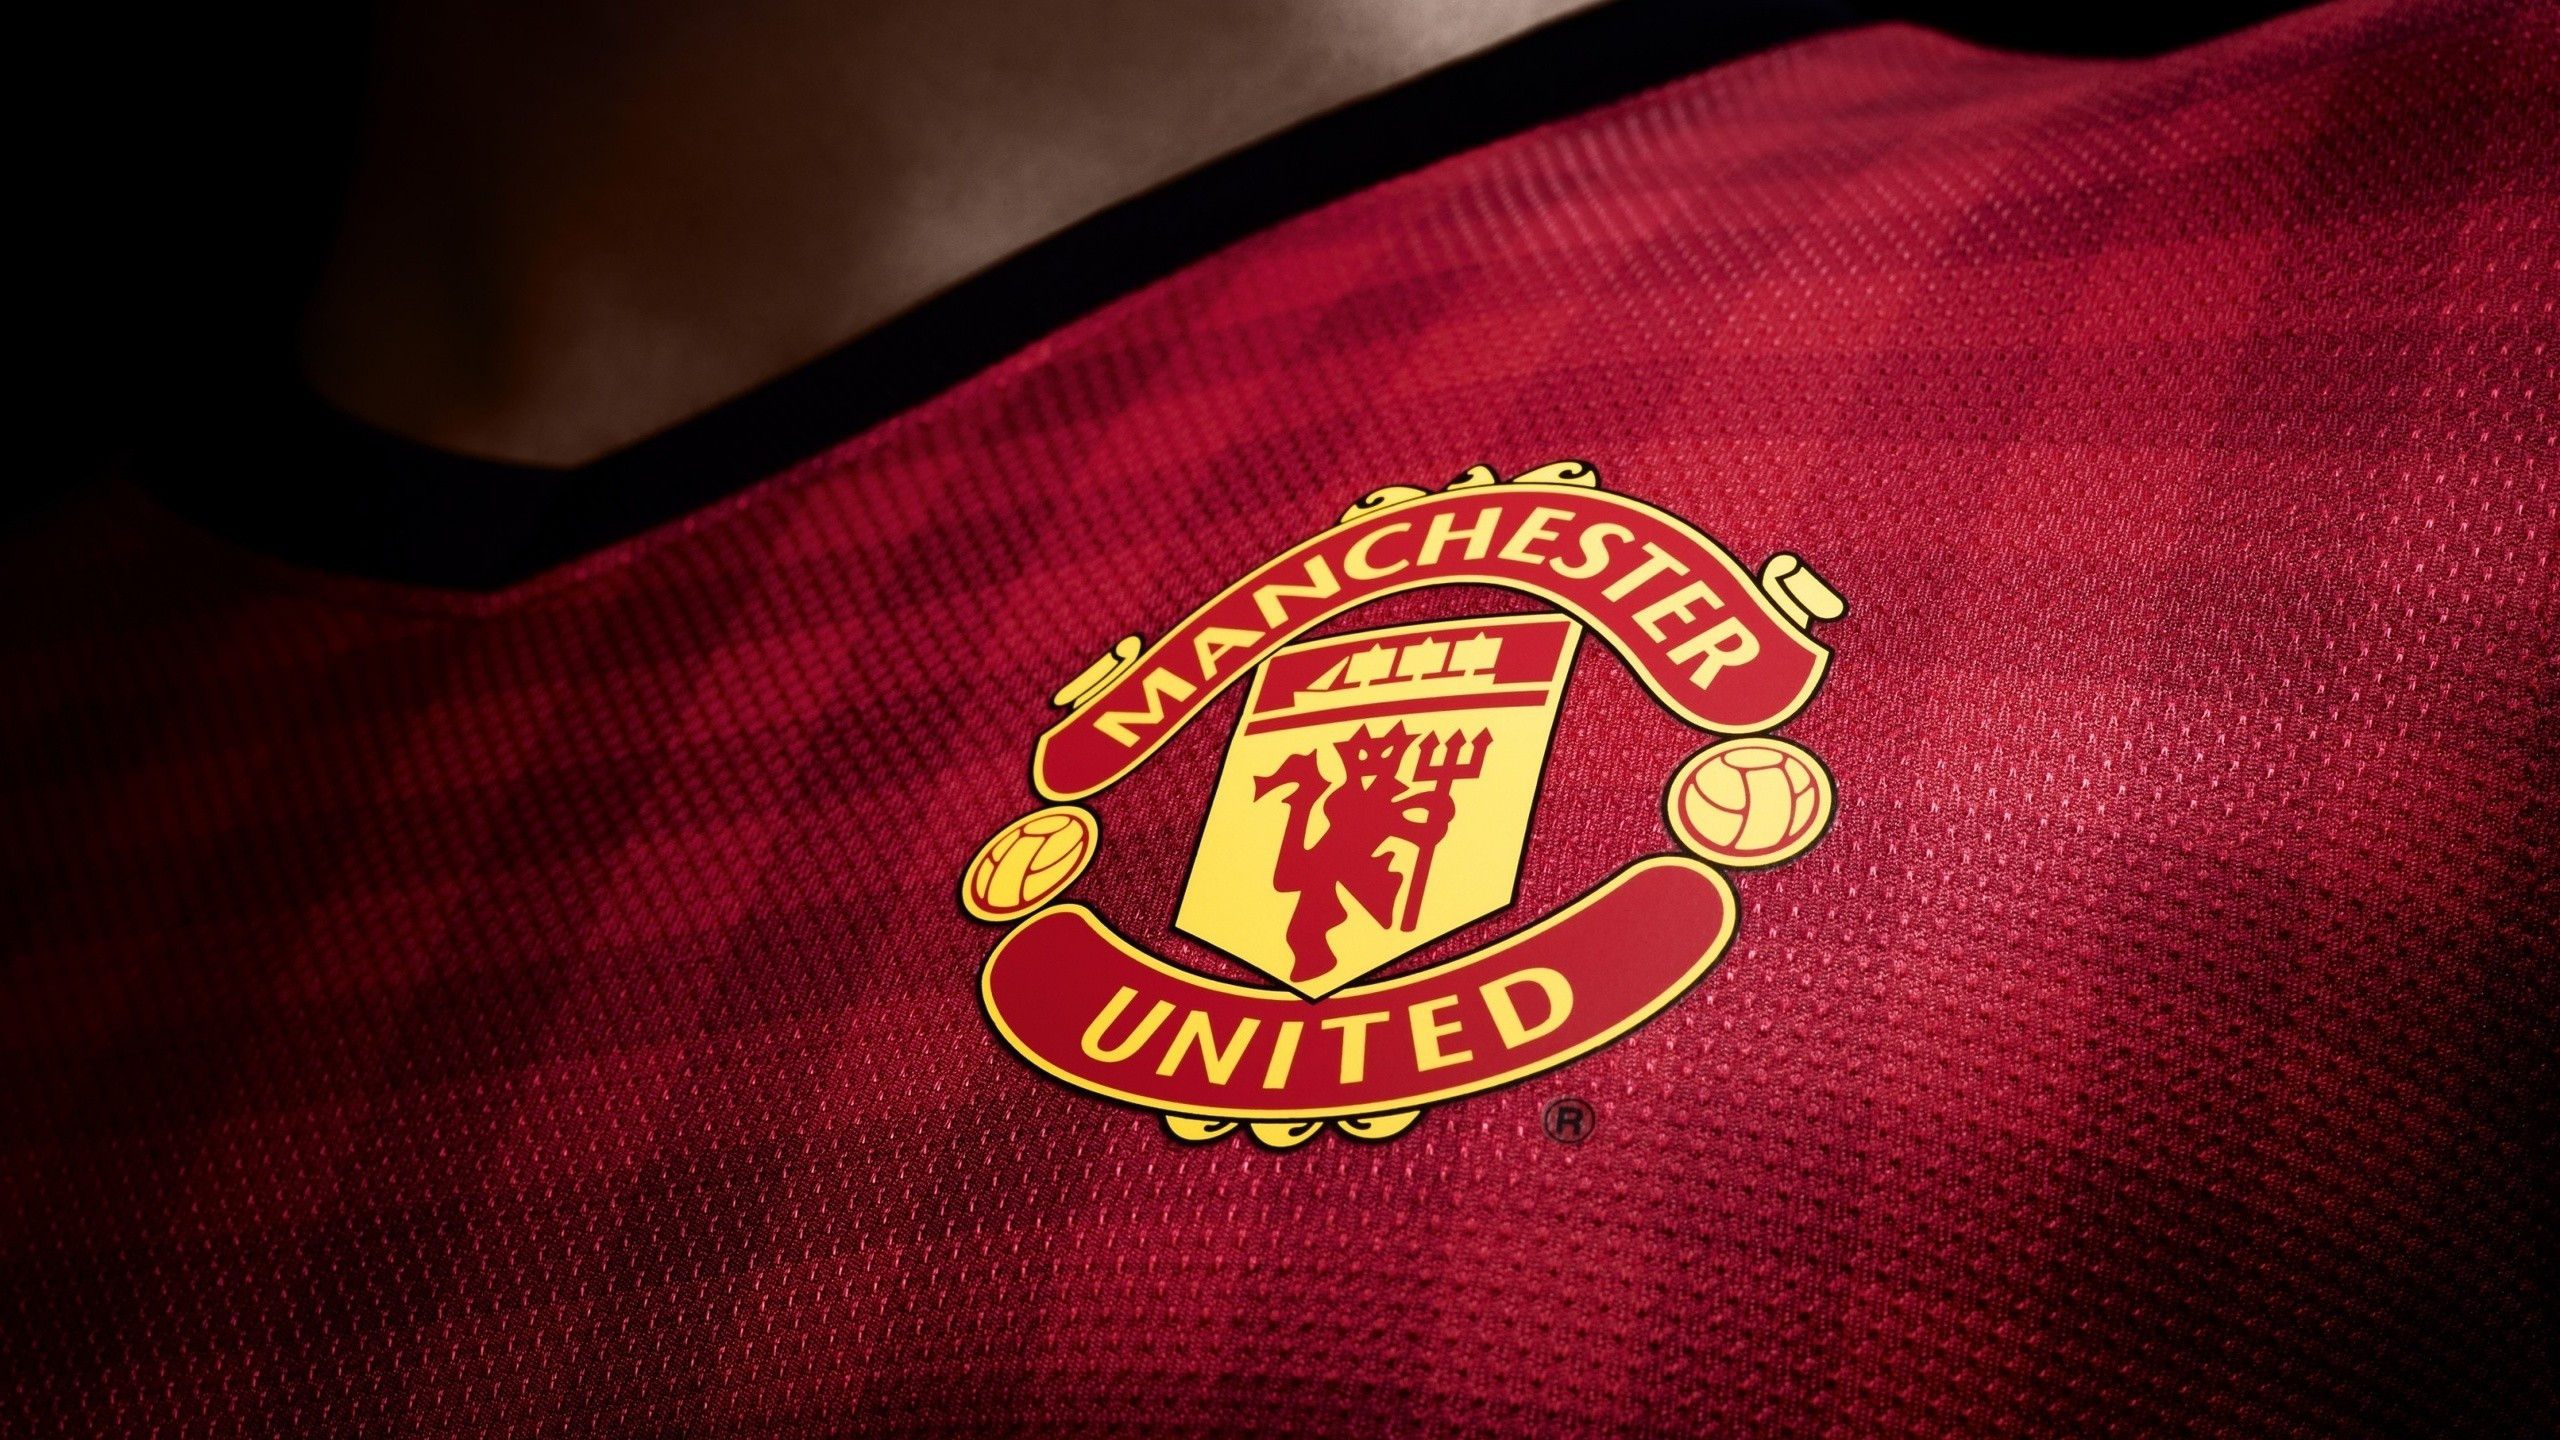 2560x1440 Manchester United, Soccer Clubs, Red Devil Wallpaper HD